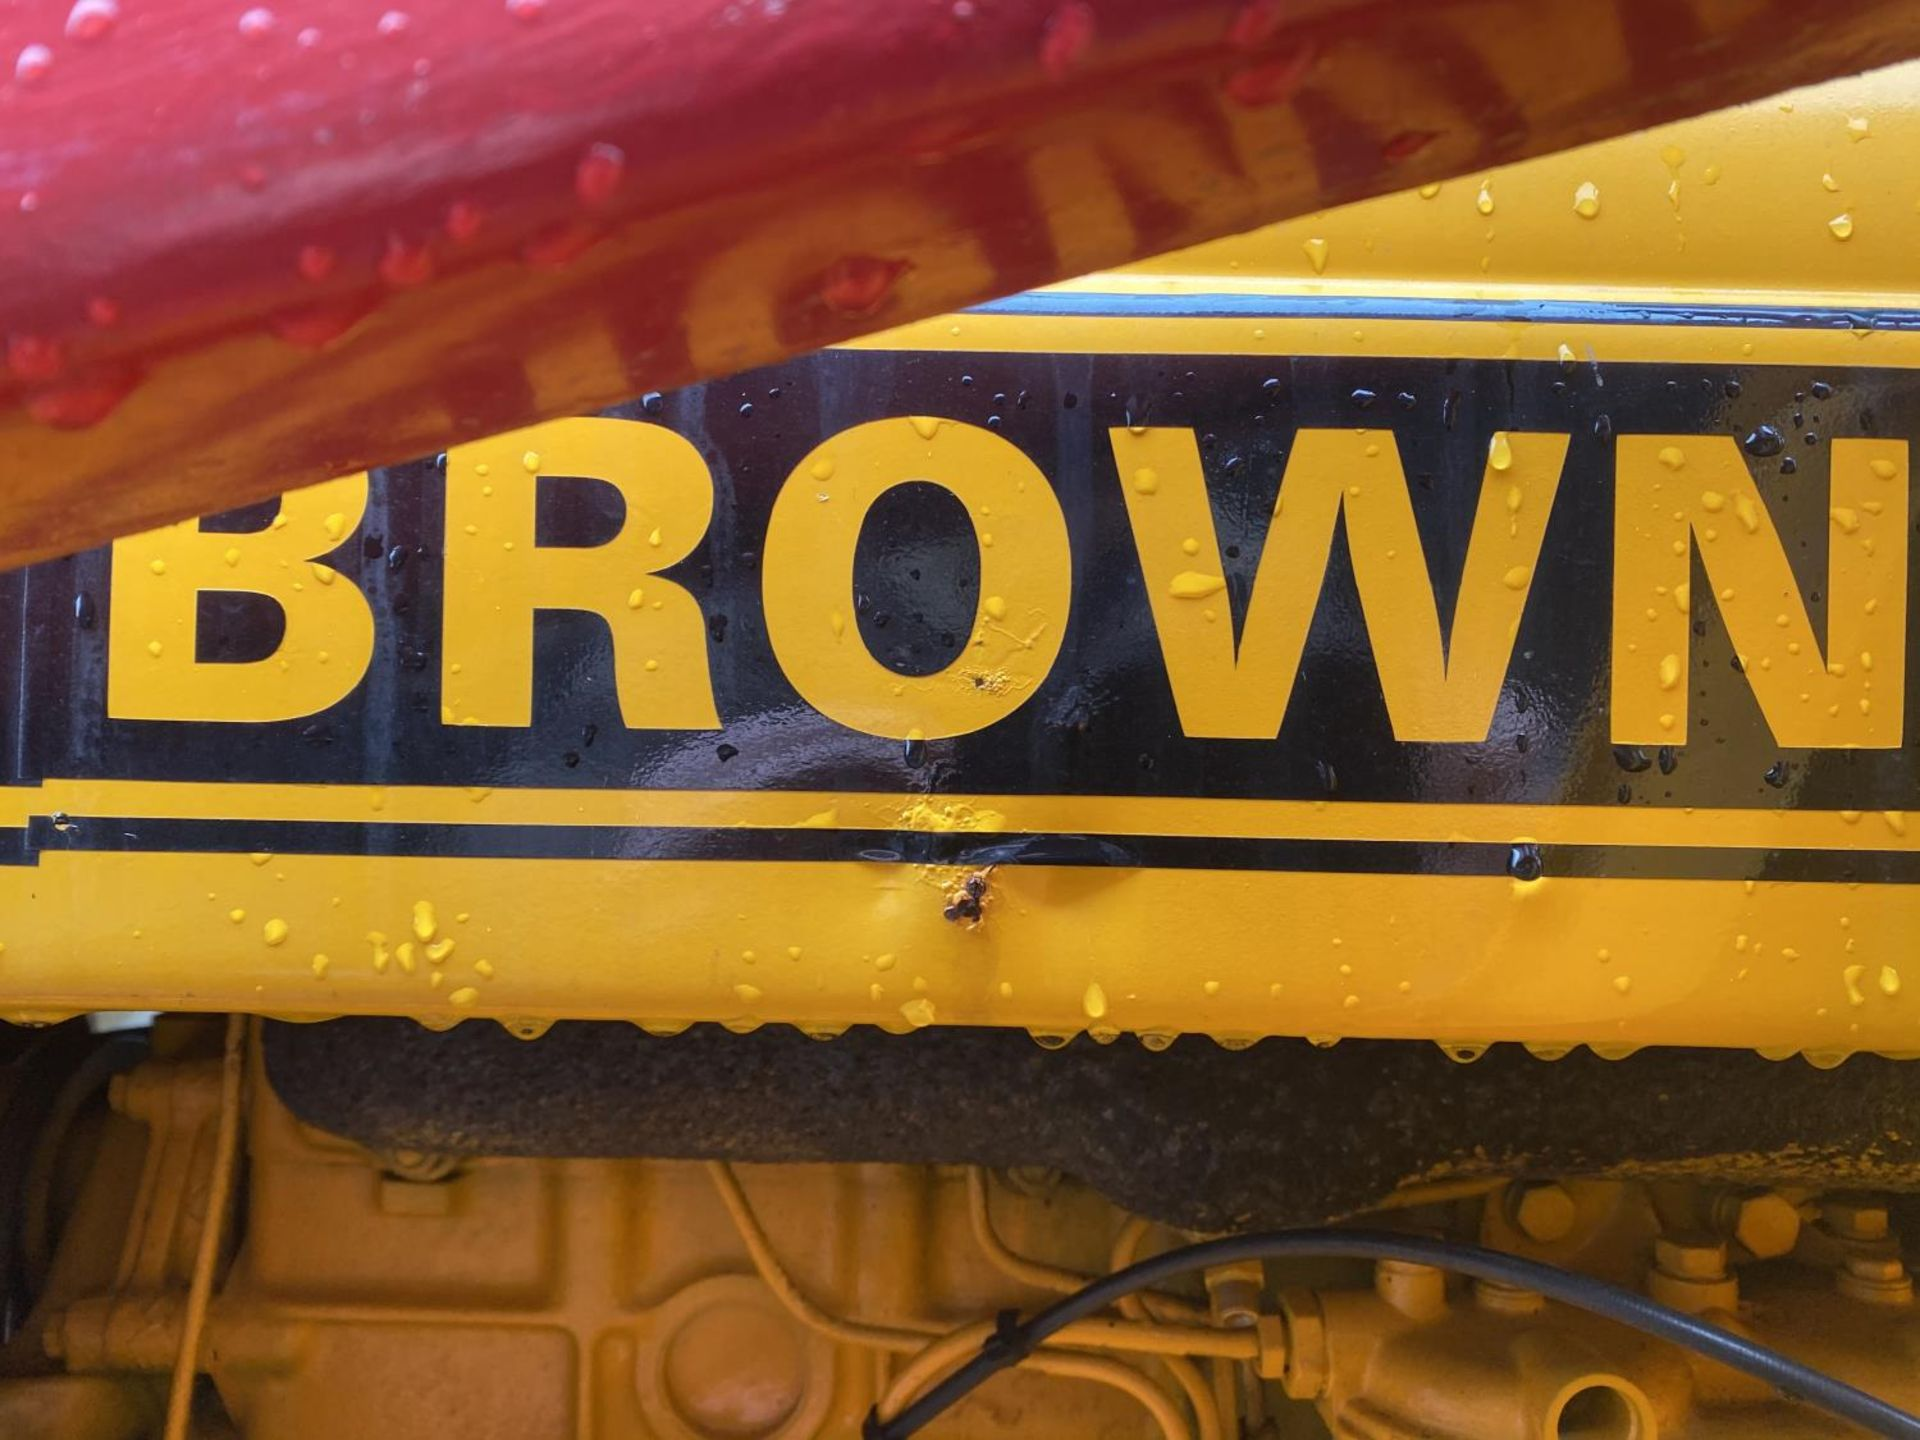 A DAVID BROWN 995 TRACTOR WITH FORE END LOADER AND MANURE FORK 3779 HOURS - Image 7 of 11